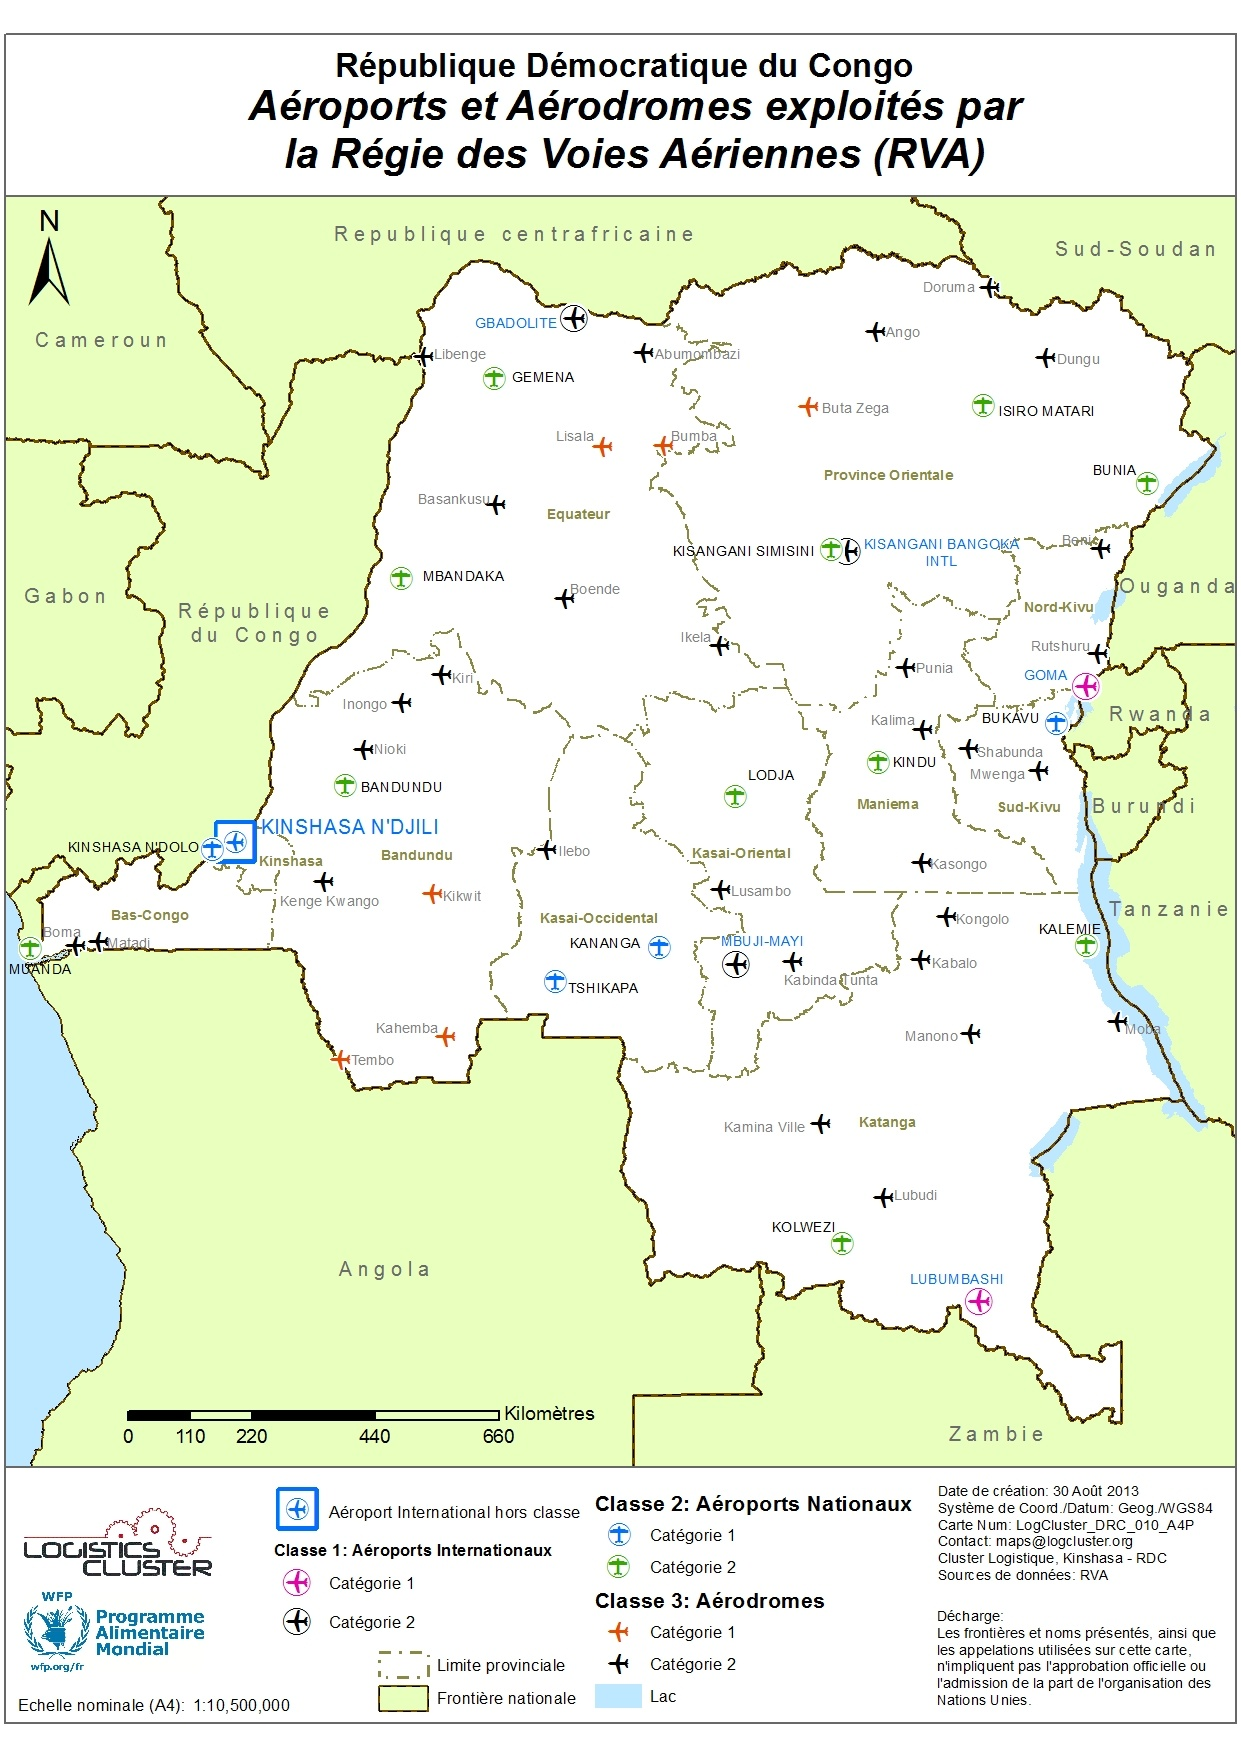 google map for download with Aviation In The Republic Of The Congo on 1b512ef45c48512a7f79ba88826dda16 as well 669 additionally 739 moreover 20208 in addition 2154.